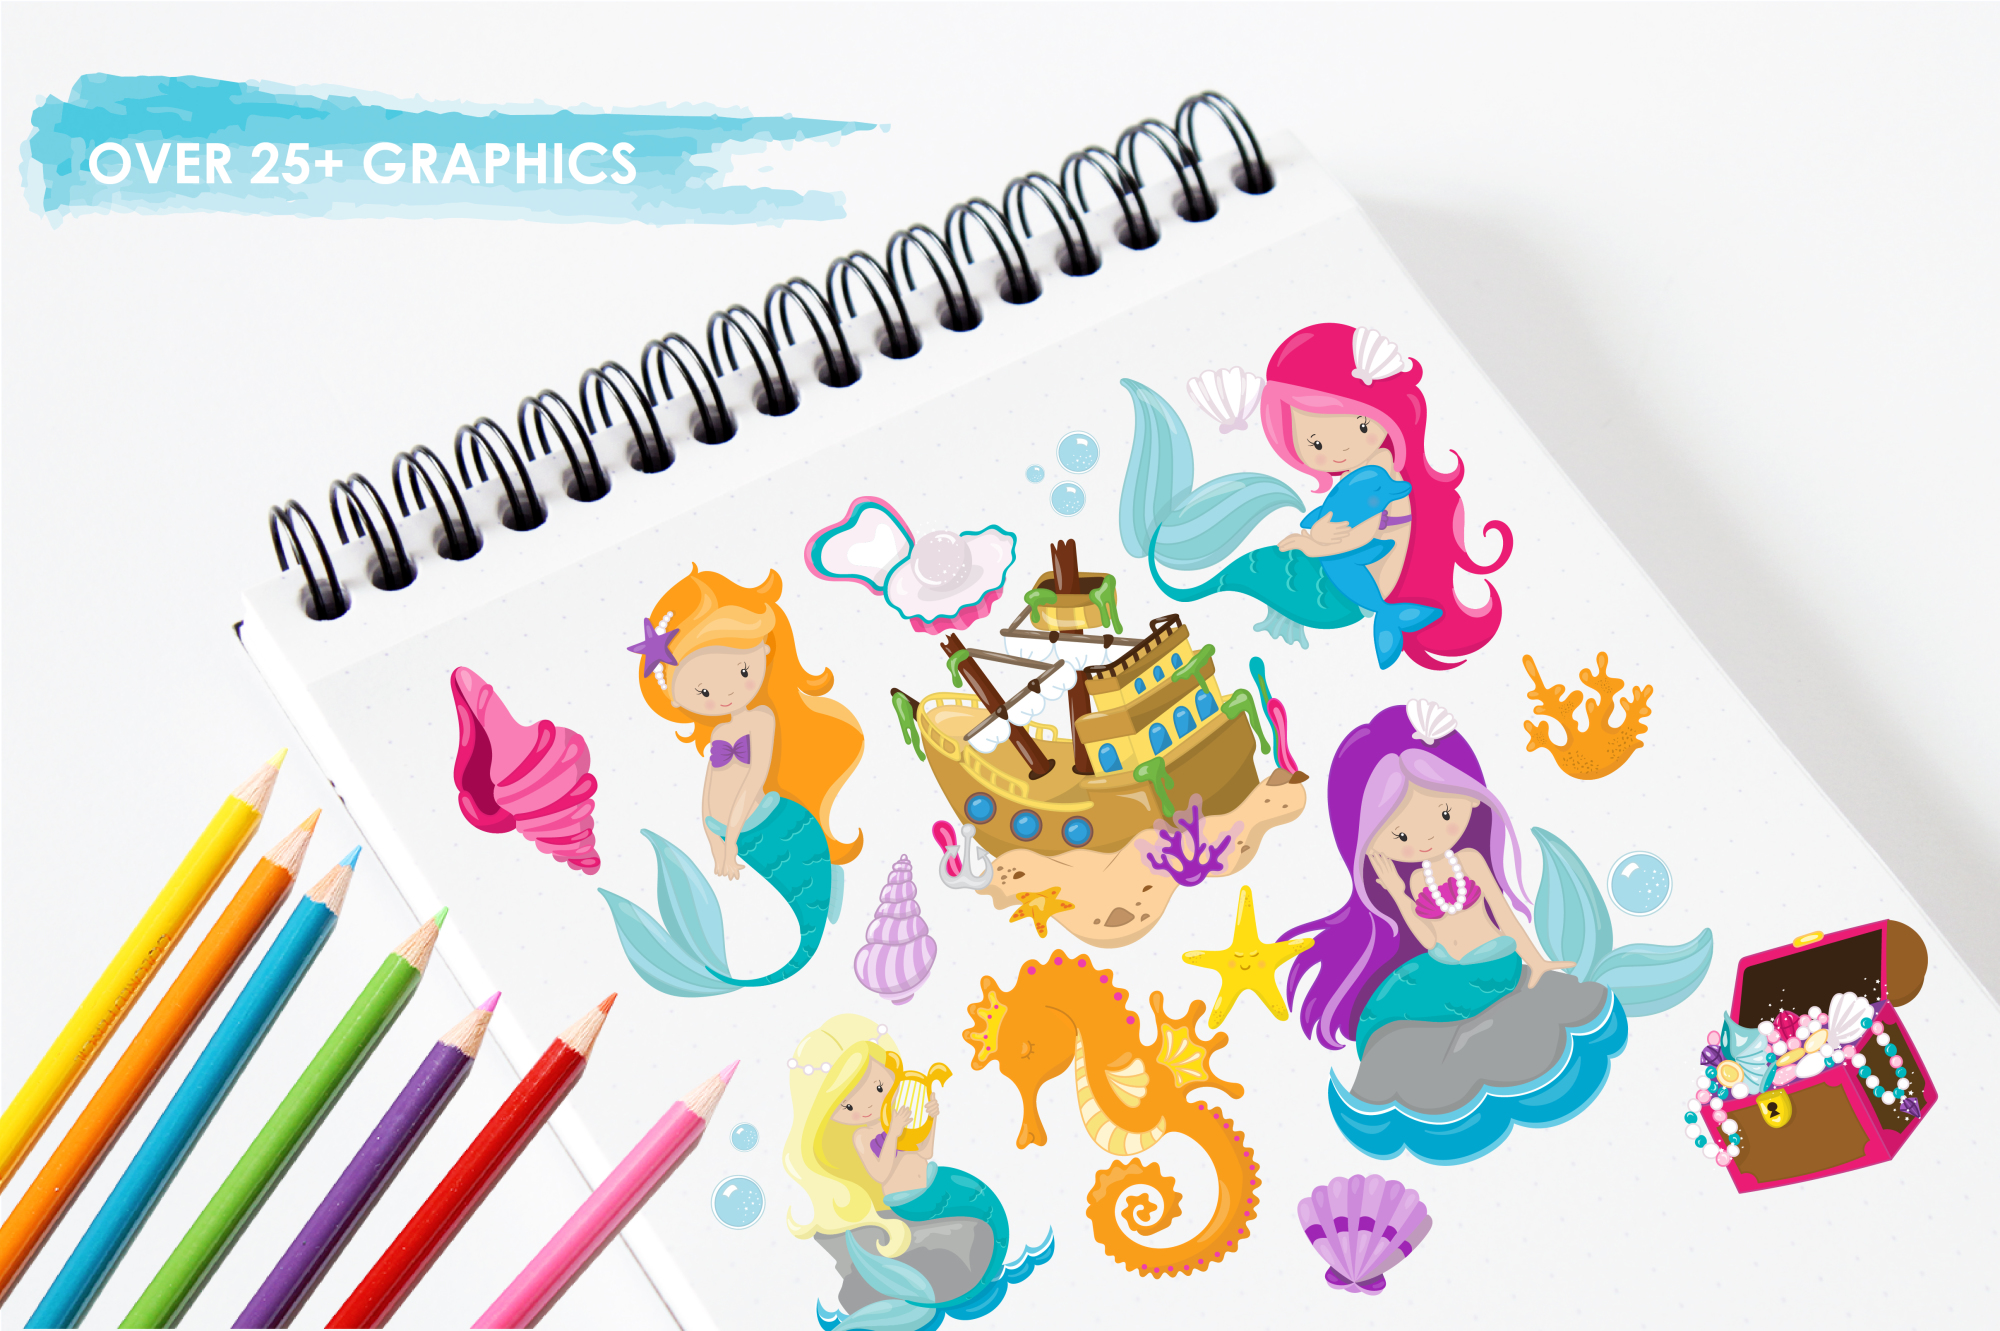 Mermaids graphics and illustrations example image 3